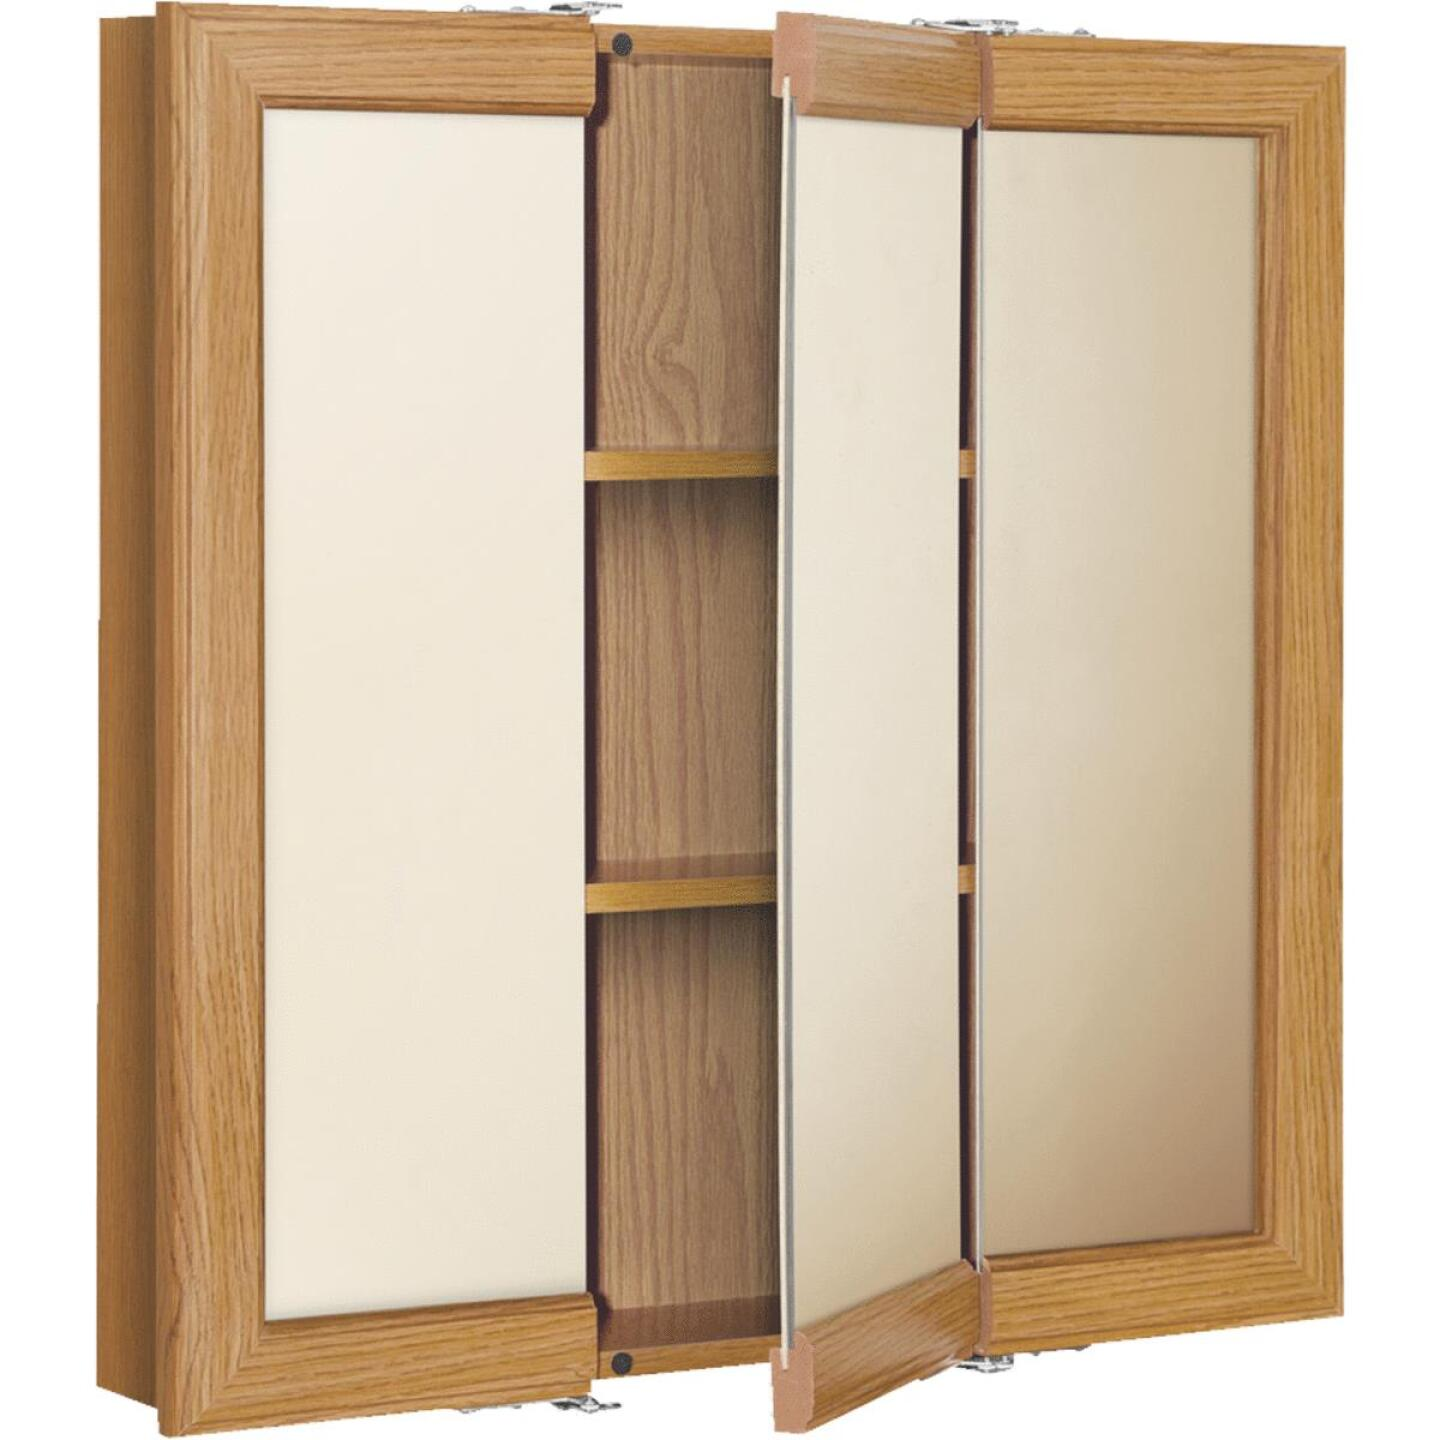 Continental Cabinets Oak 30 In. W x 28-3/4 In. H x 4-1/2 In. D Tri-View Surface Mount Medicine Cabinet Image 3